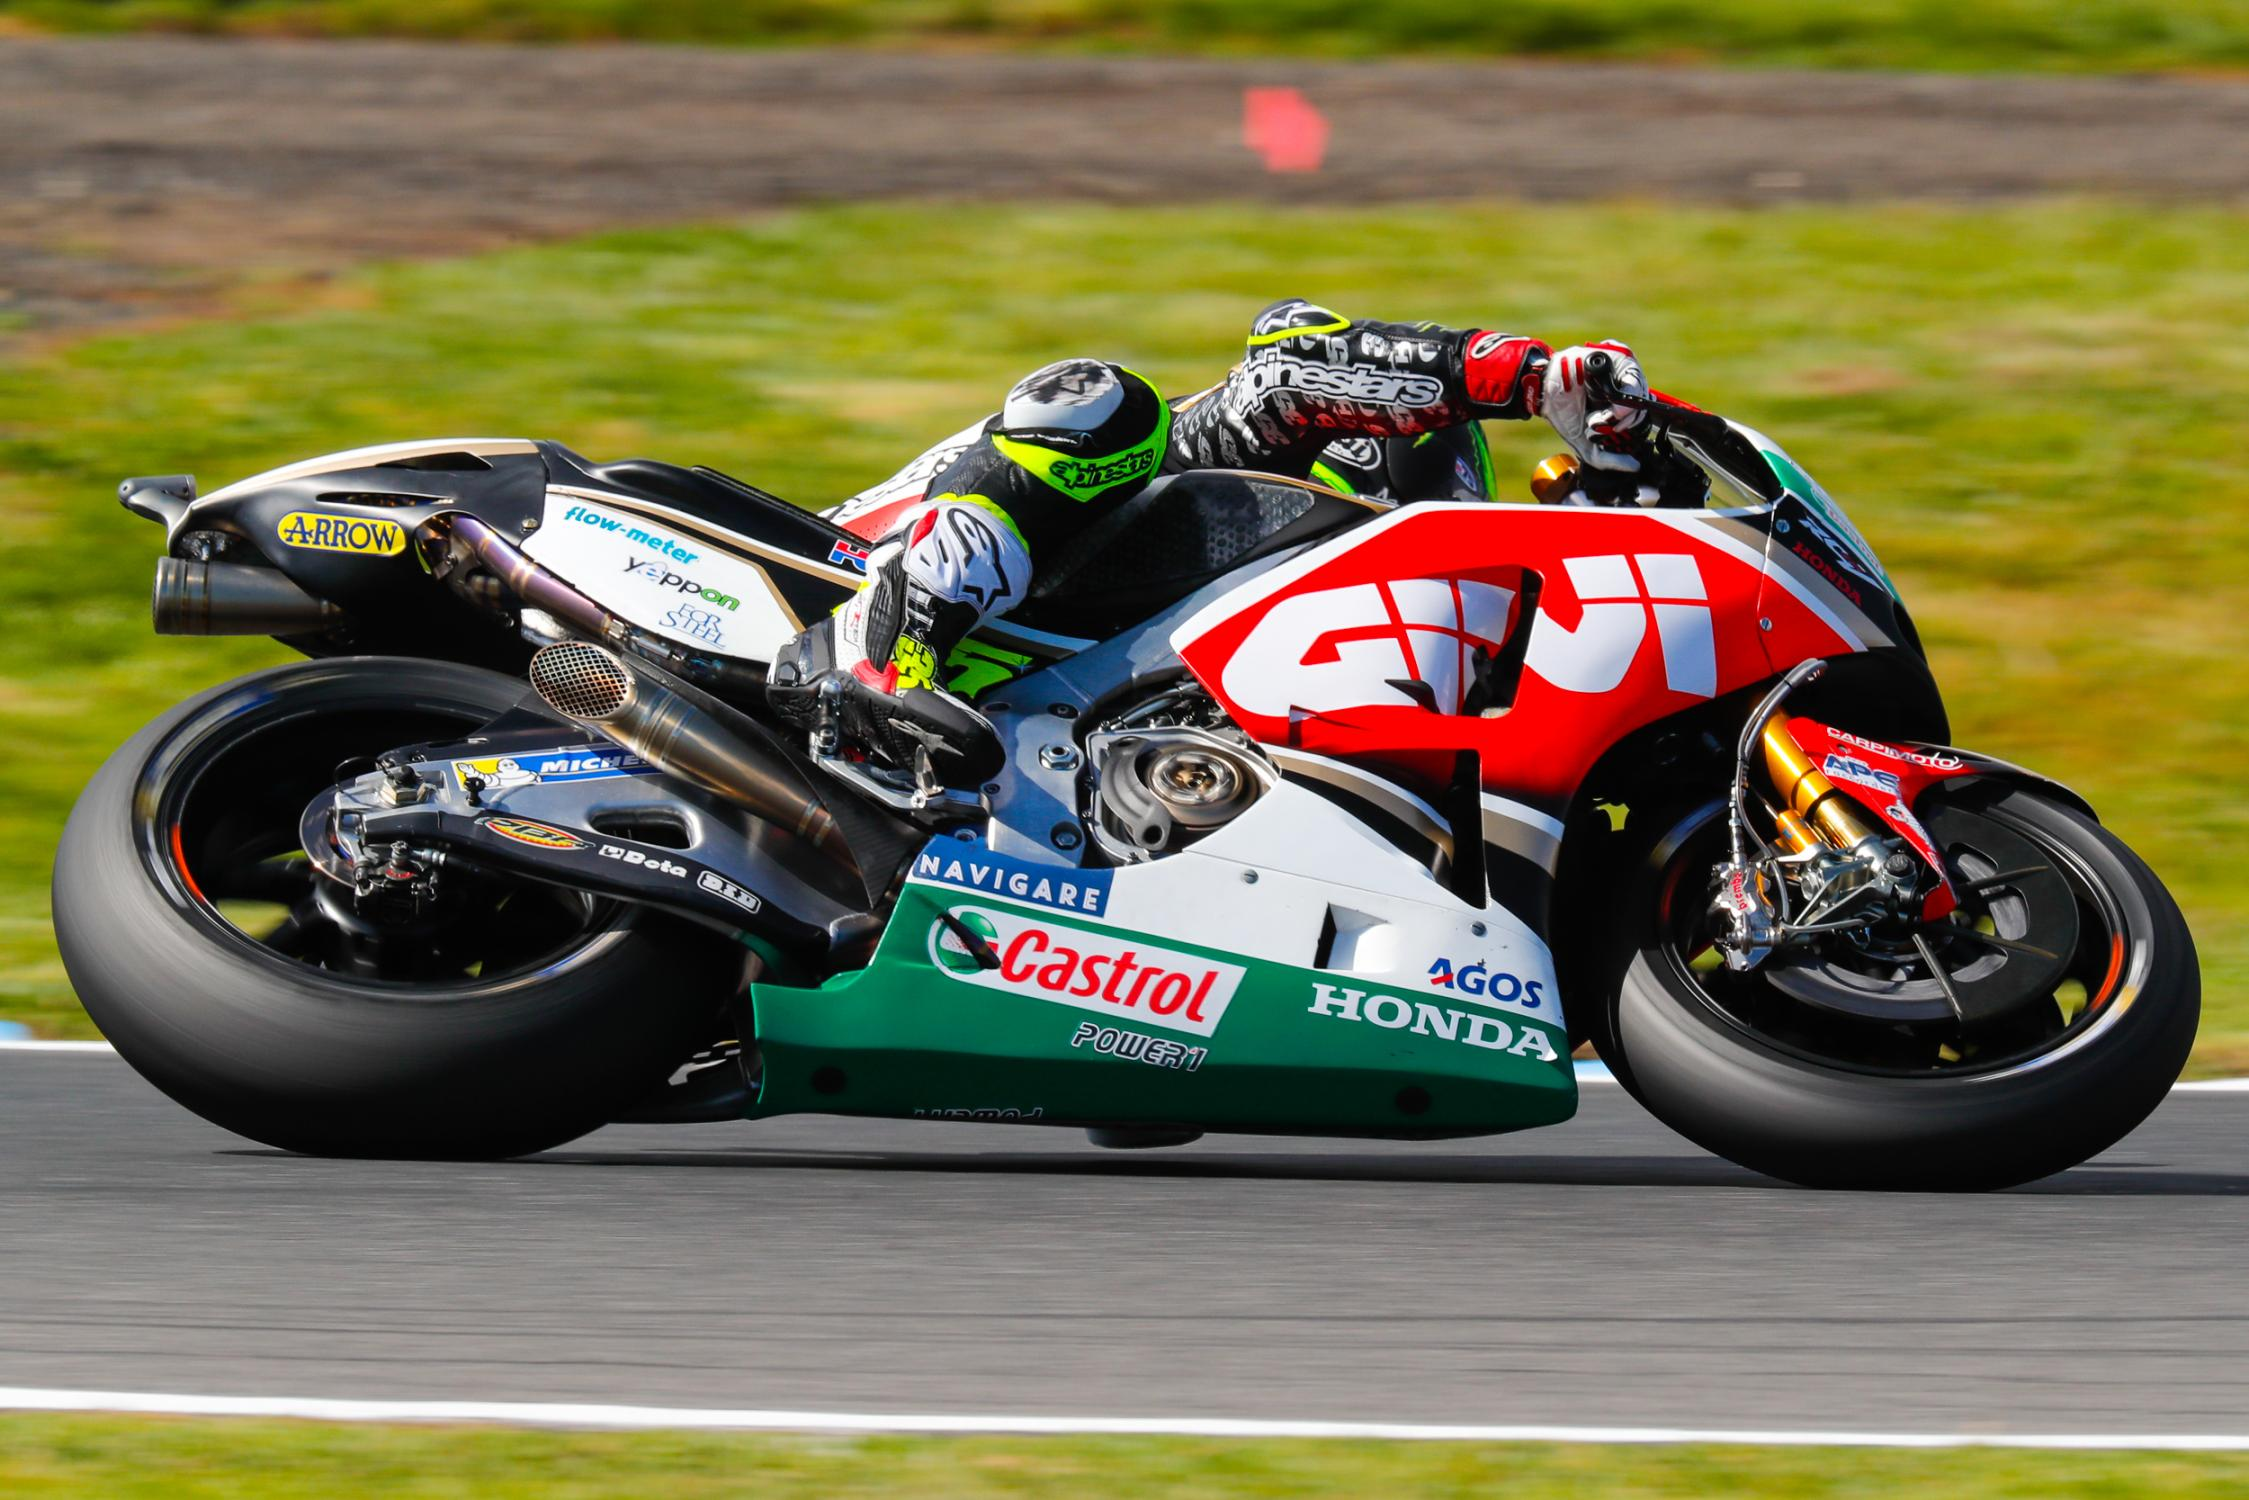 35-cal-crutchlow-eng_29i0938.gallery_full_top_fullscreen.jpg